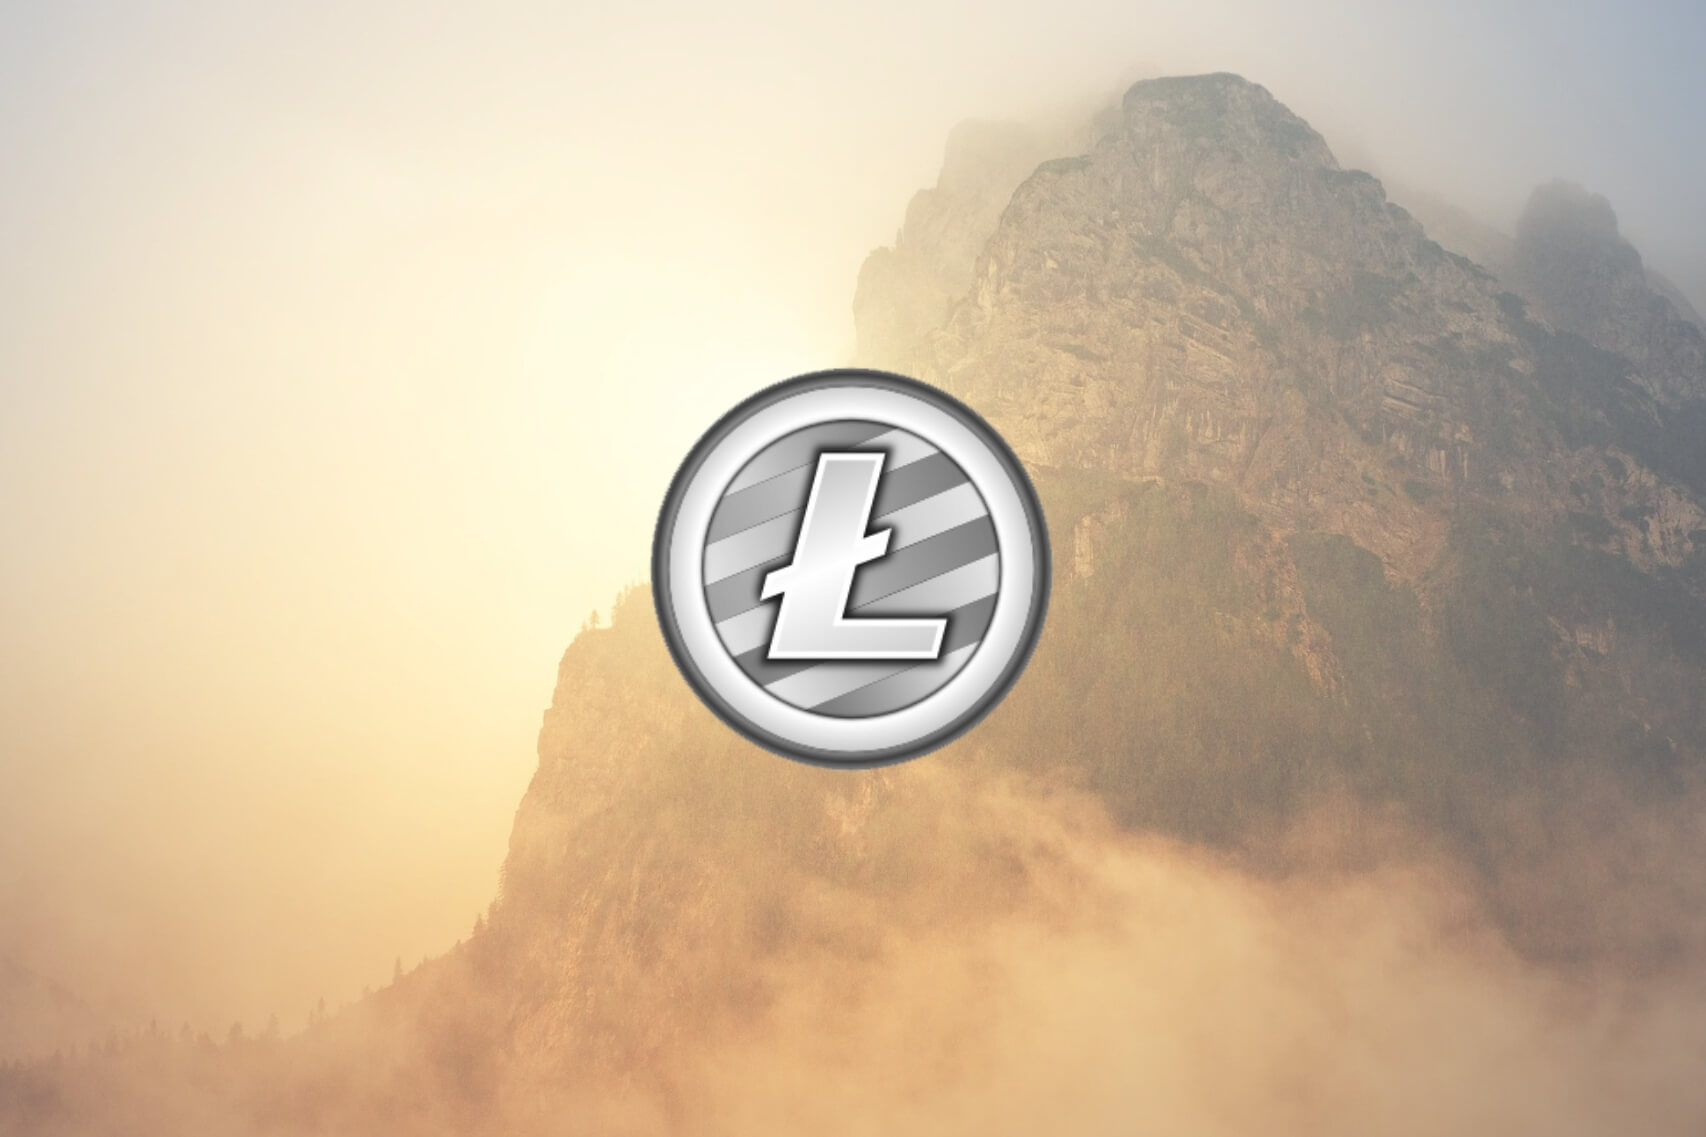 LTC Sees Positive Growth But Can the Bulls Continue to Drive Toward $40?